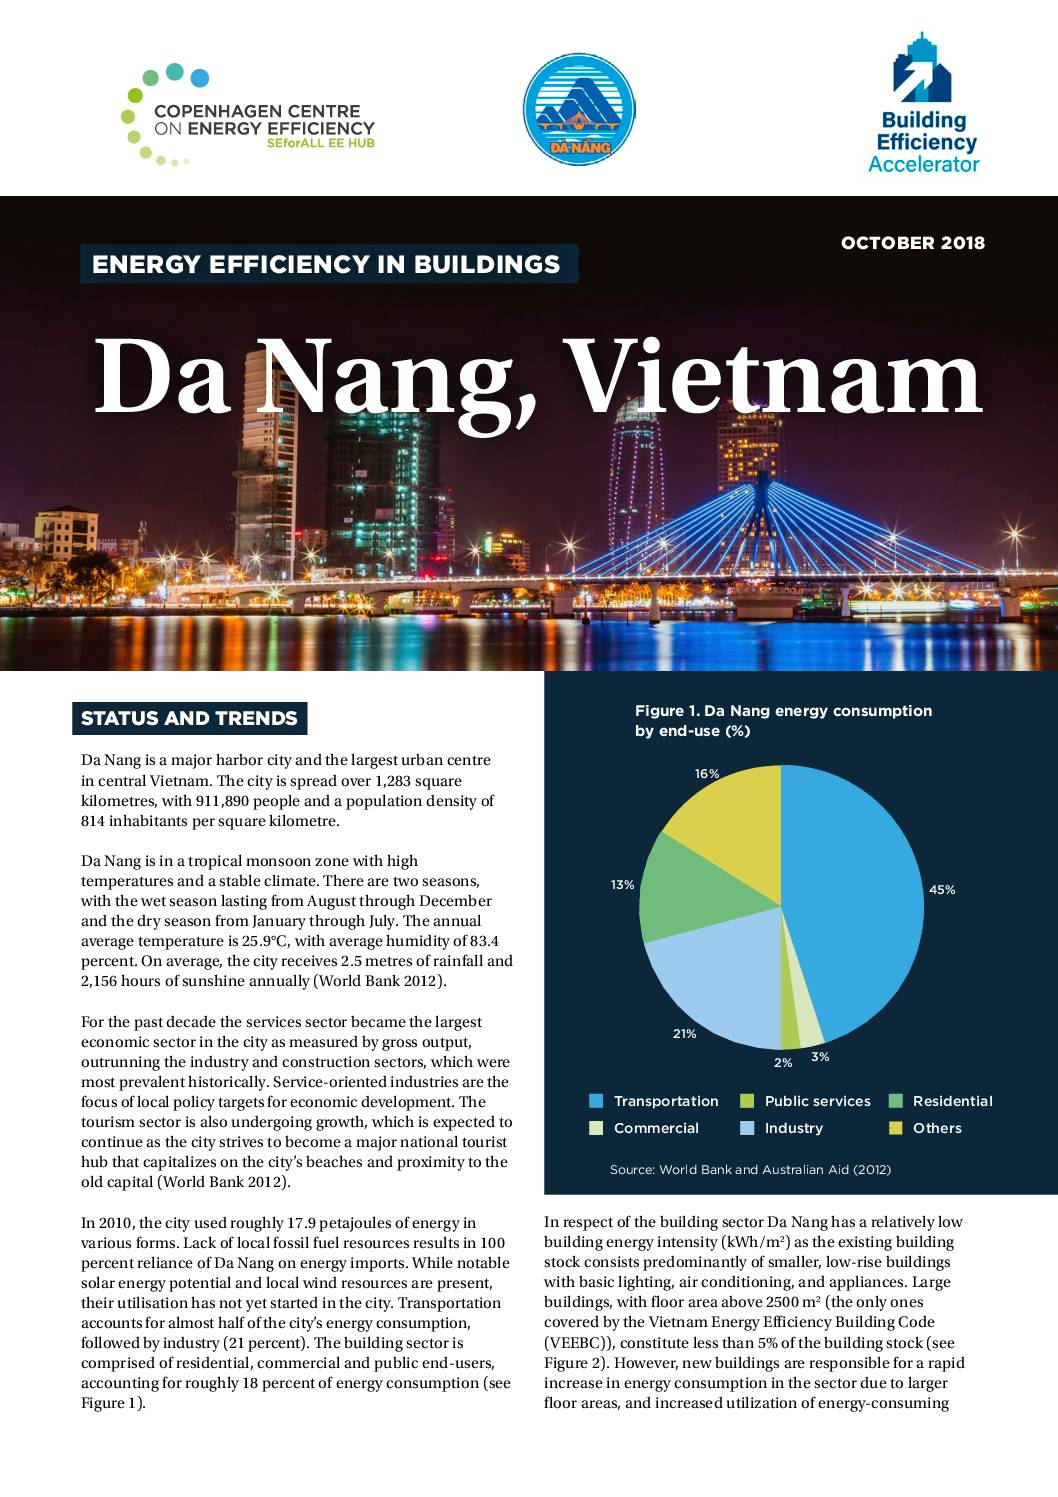 Energy Efficiency in Buildings: Da Nang, Vietnam